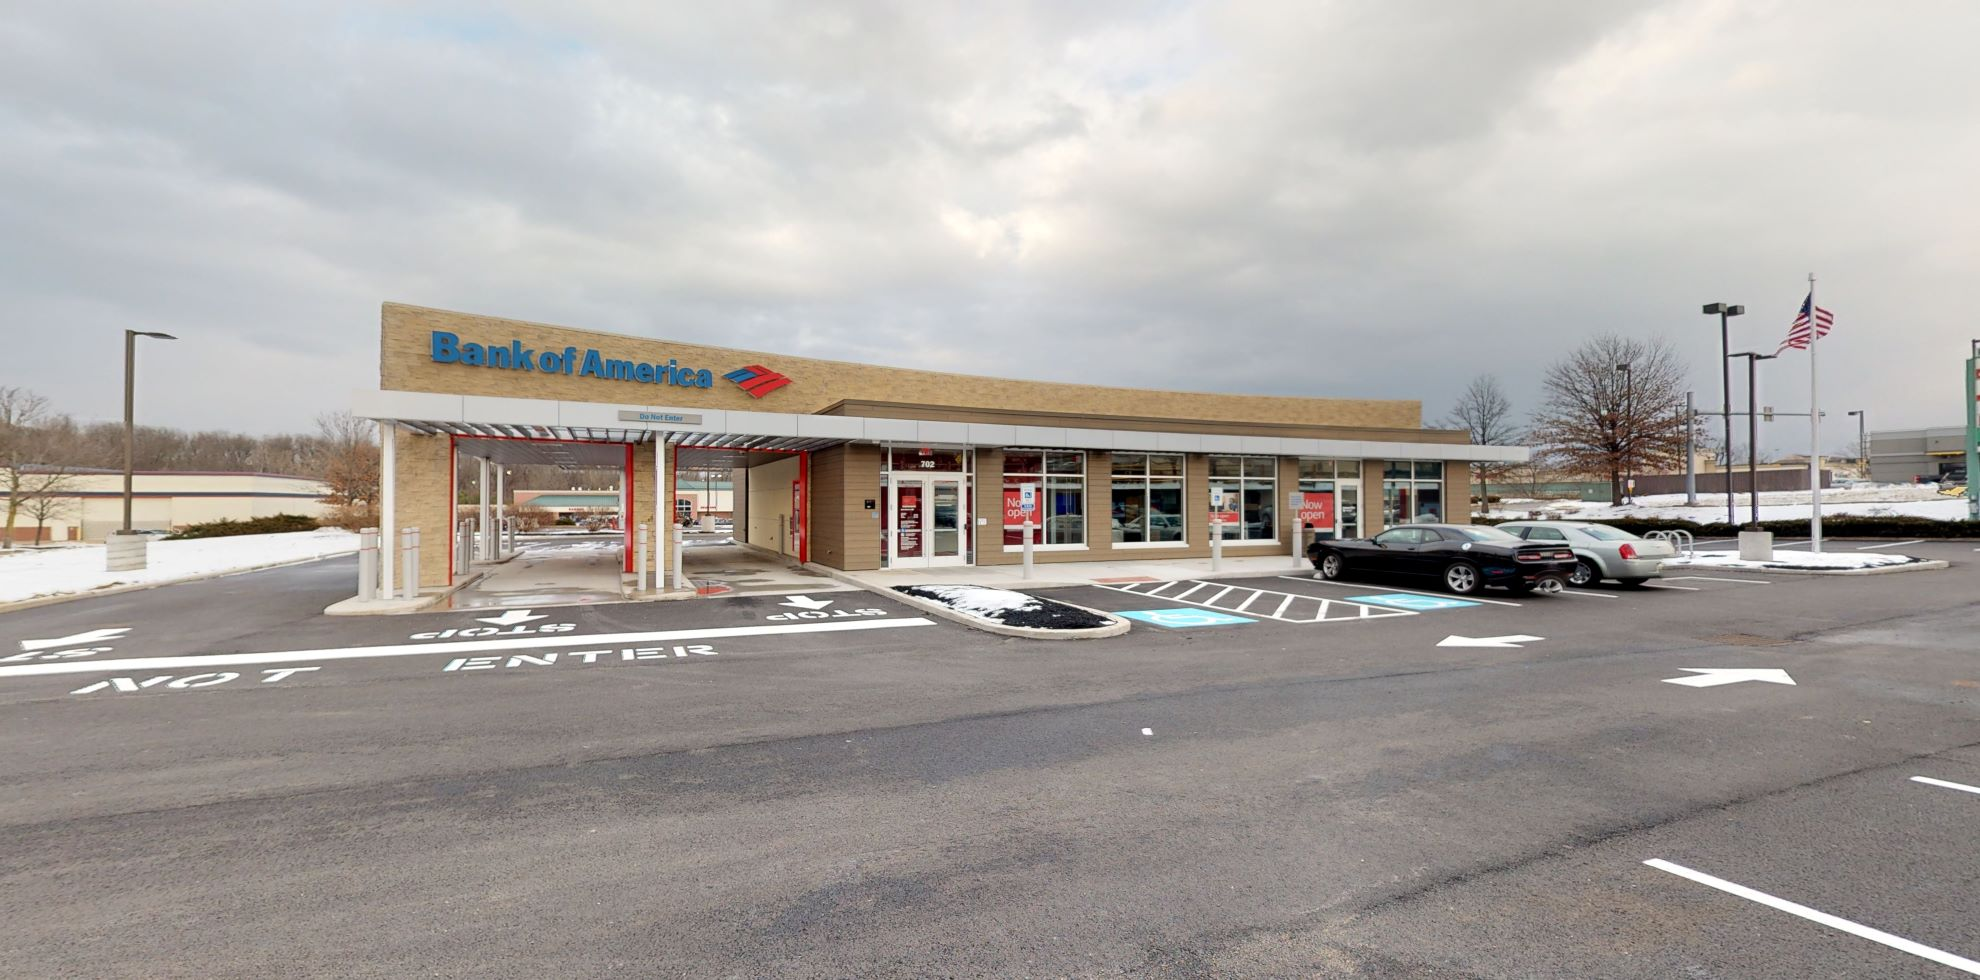 Bank of America financial center with drive-thru ATM   702 Nutt Rd, Phoenixville, PA 19460